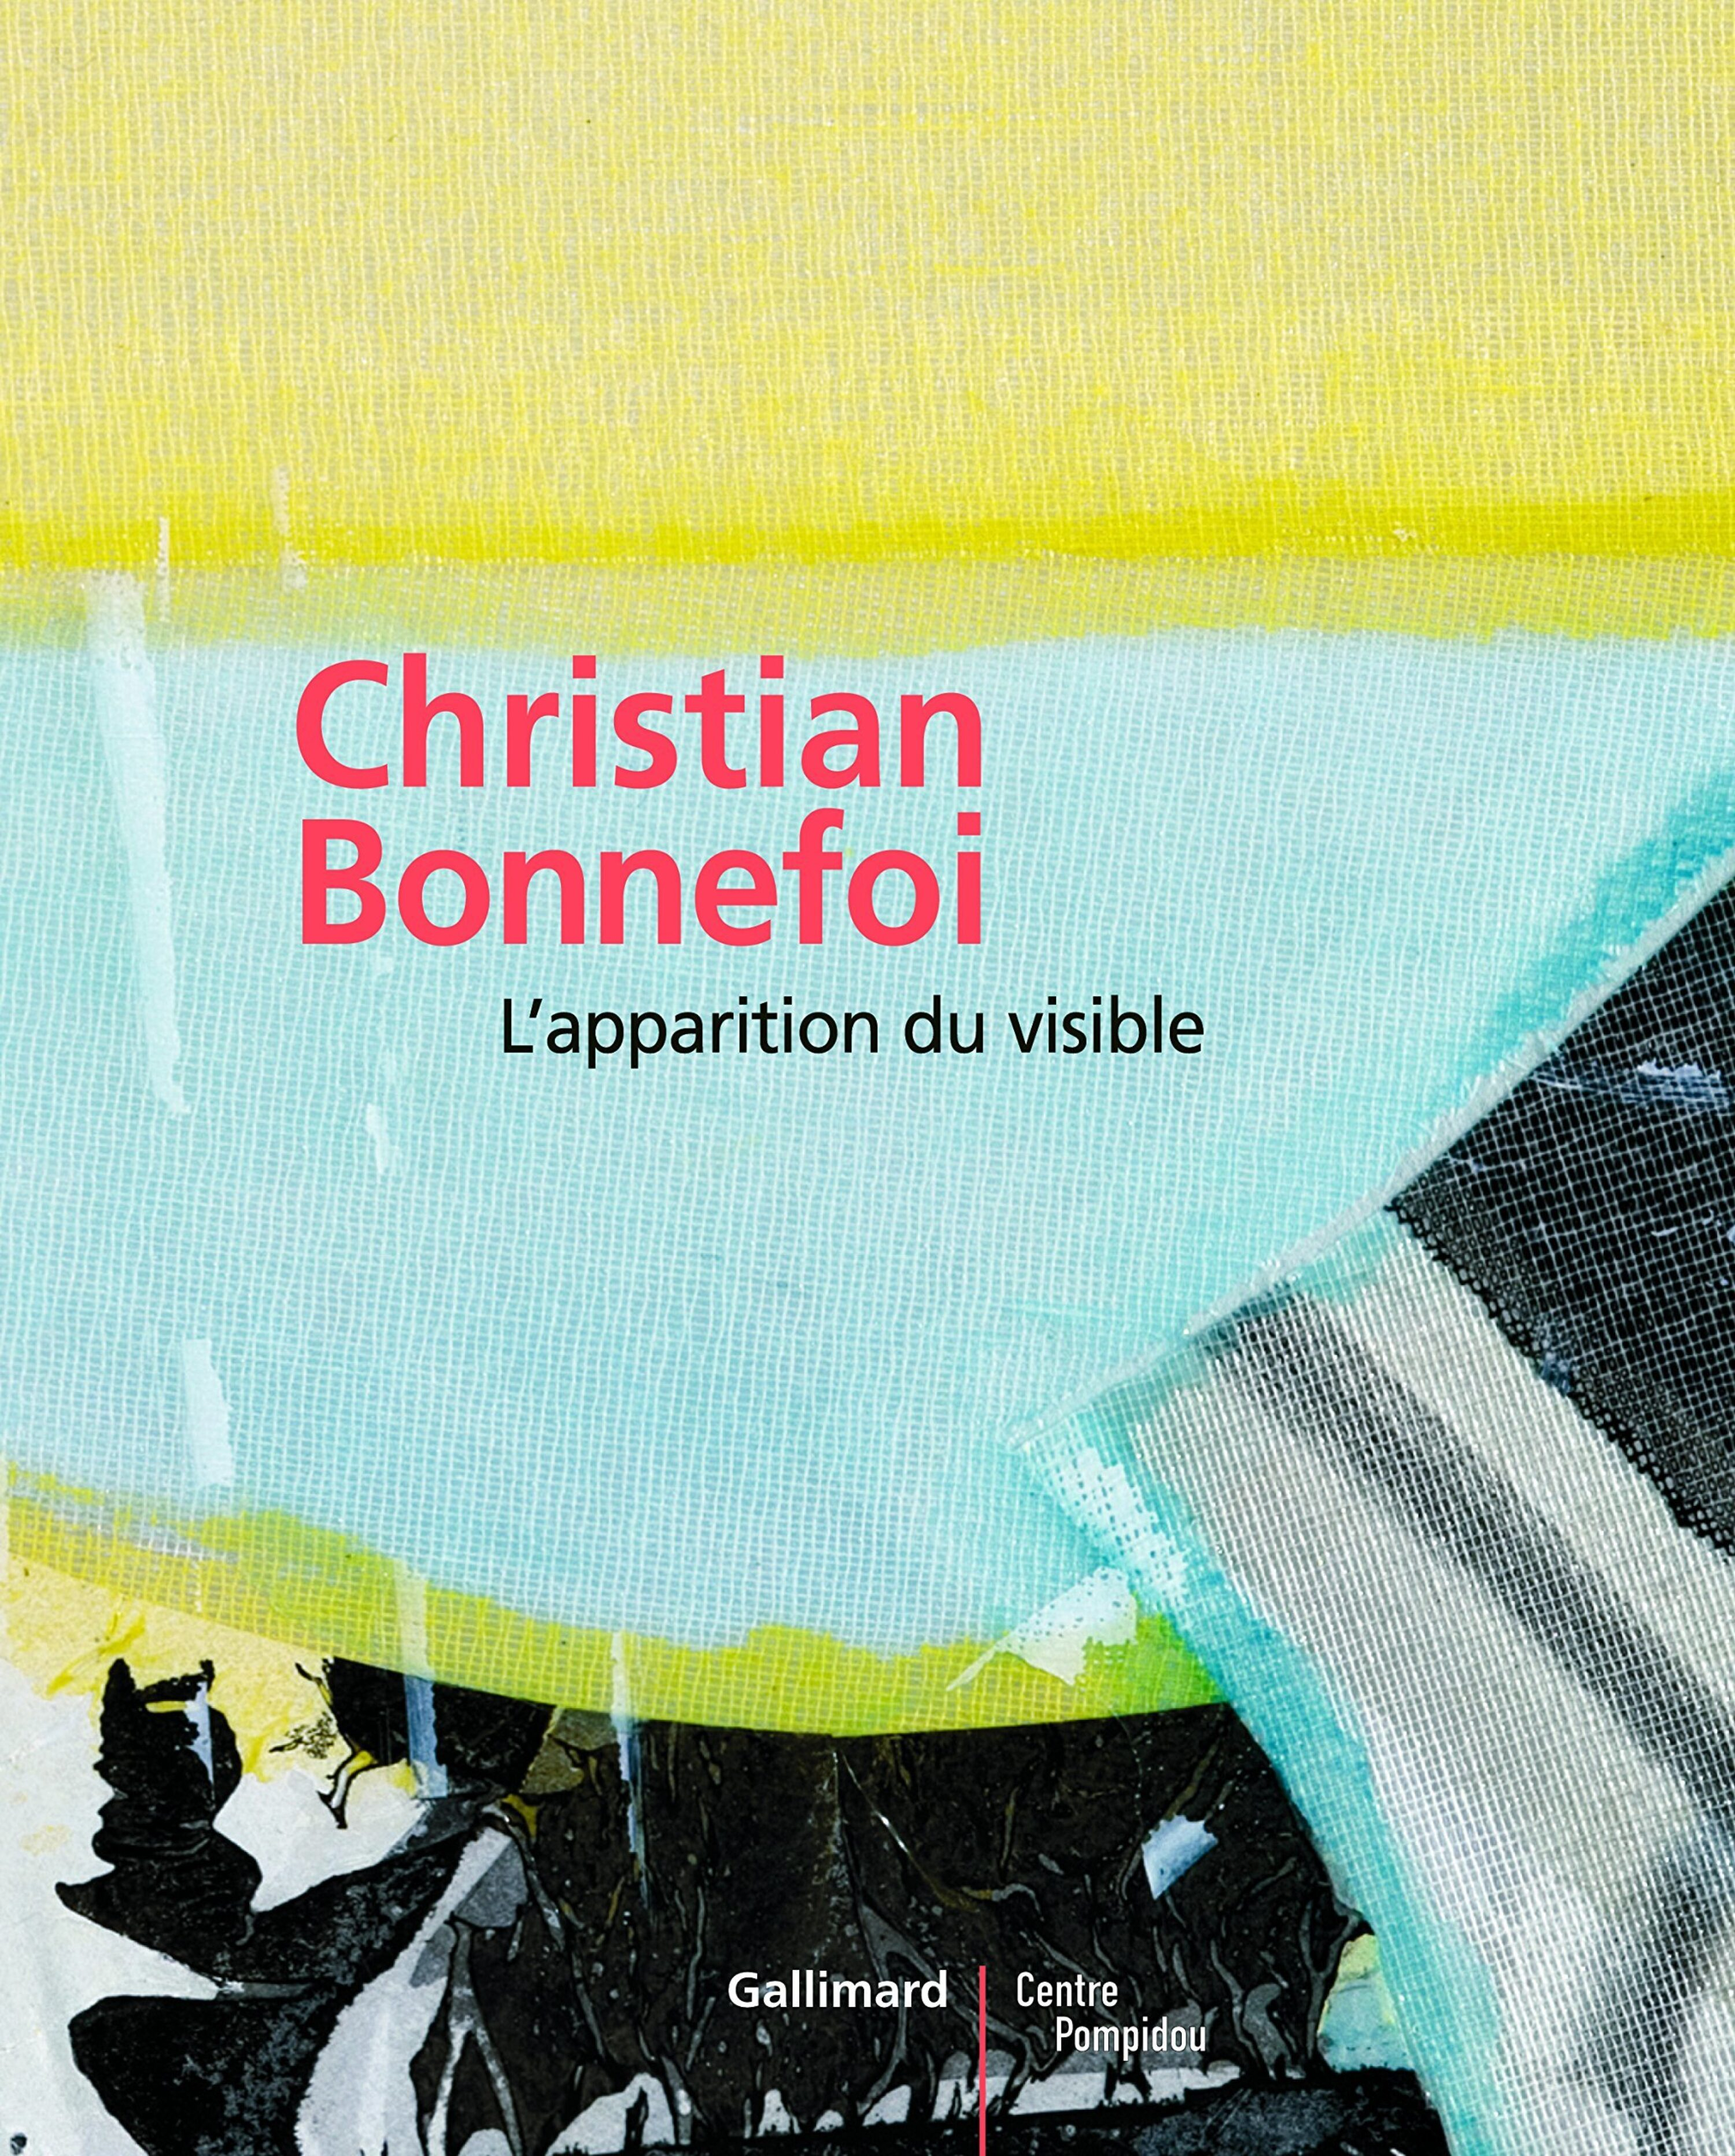 Image of the front cover of L'apparition du visible